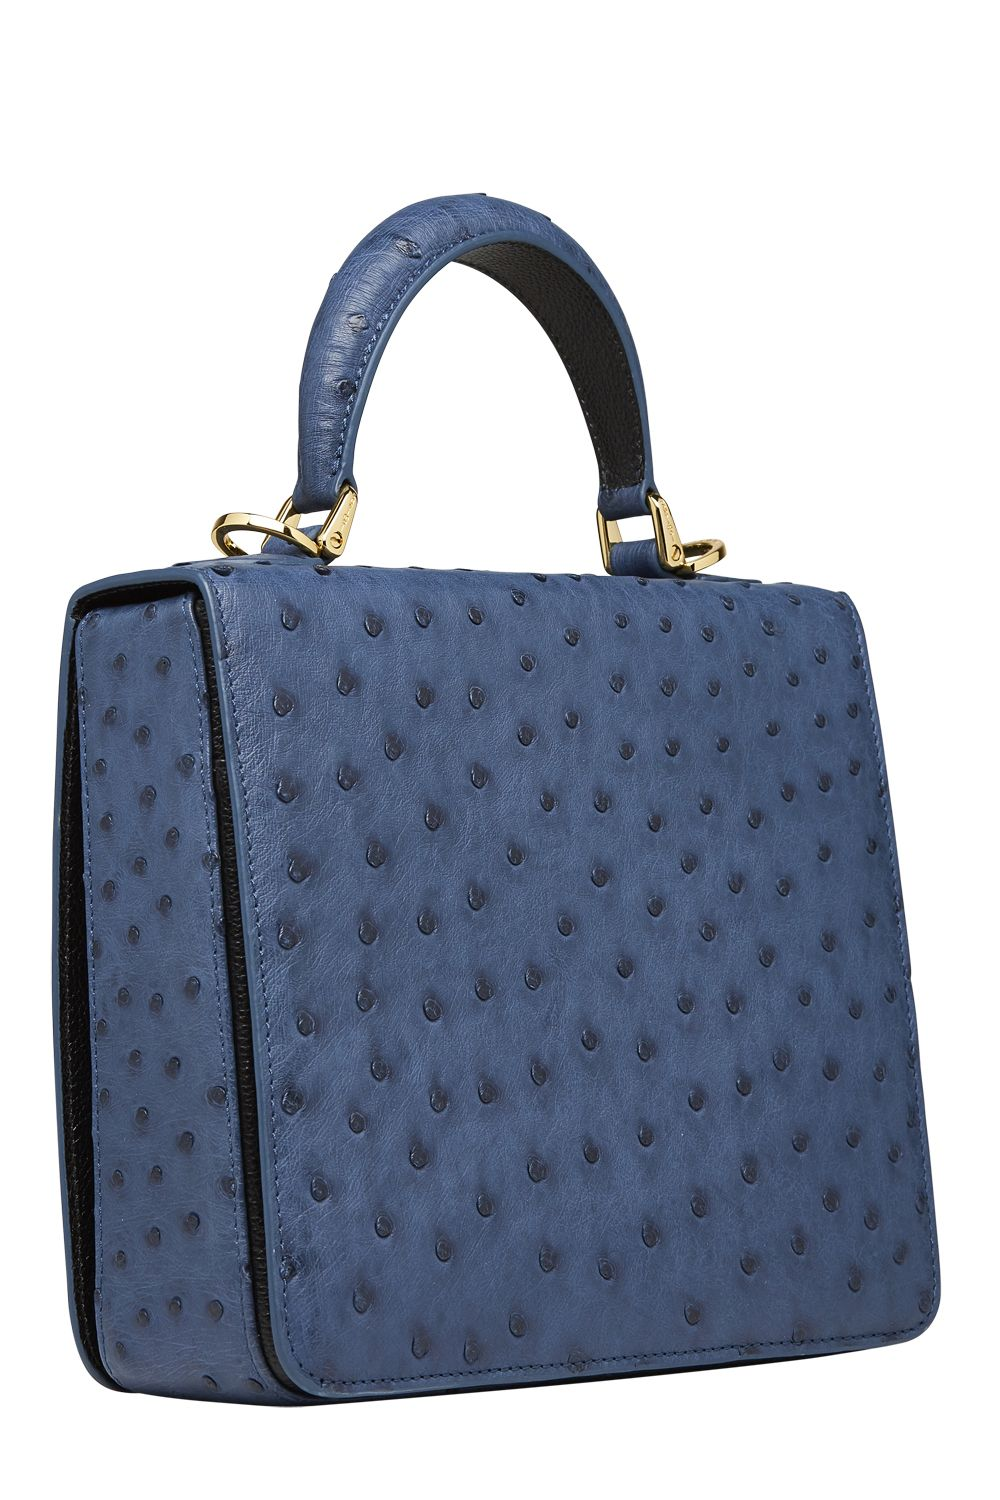 15d659d81d79 Blue ostrich handbag exclusively from Shari s Place Classics ...